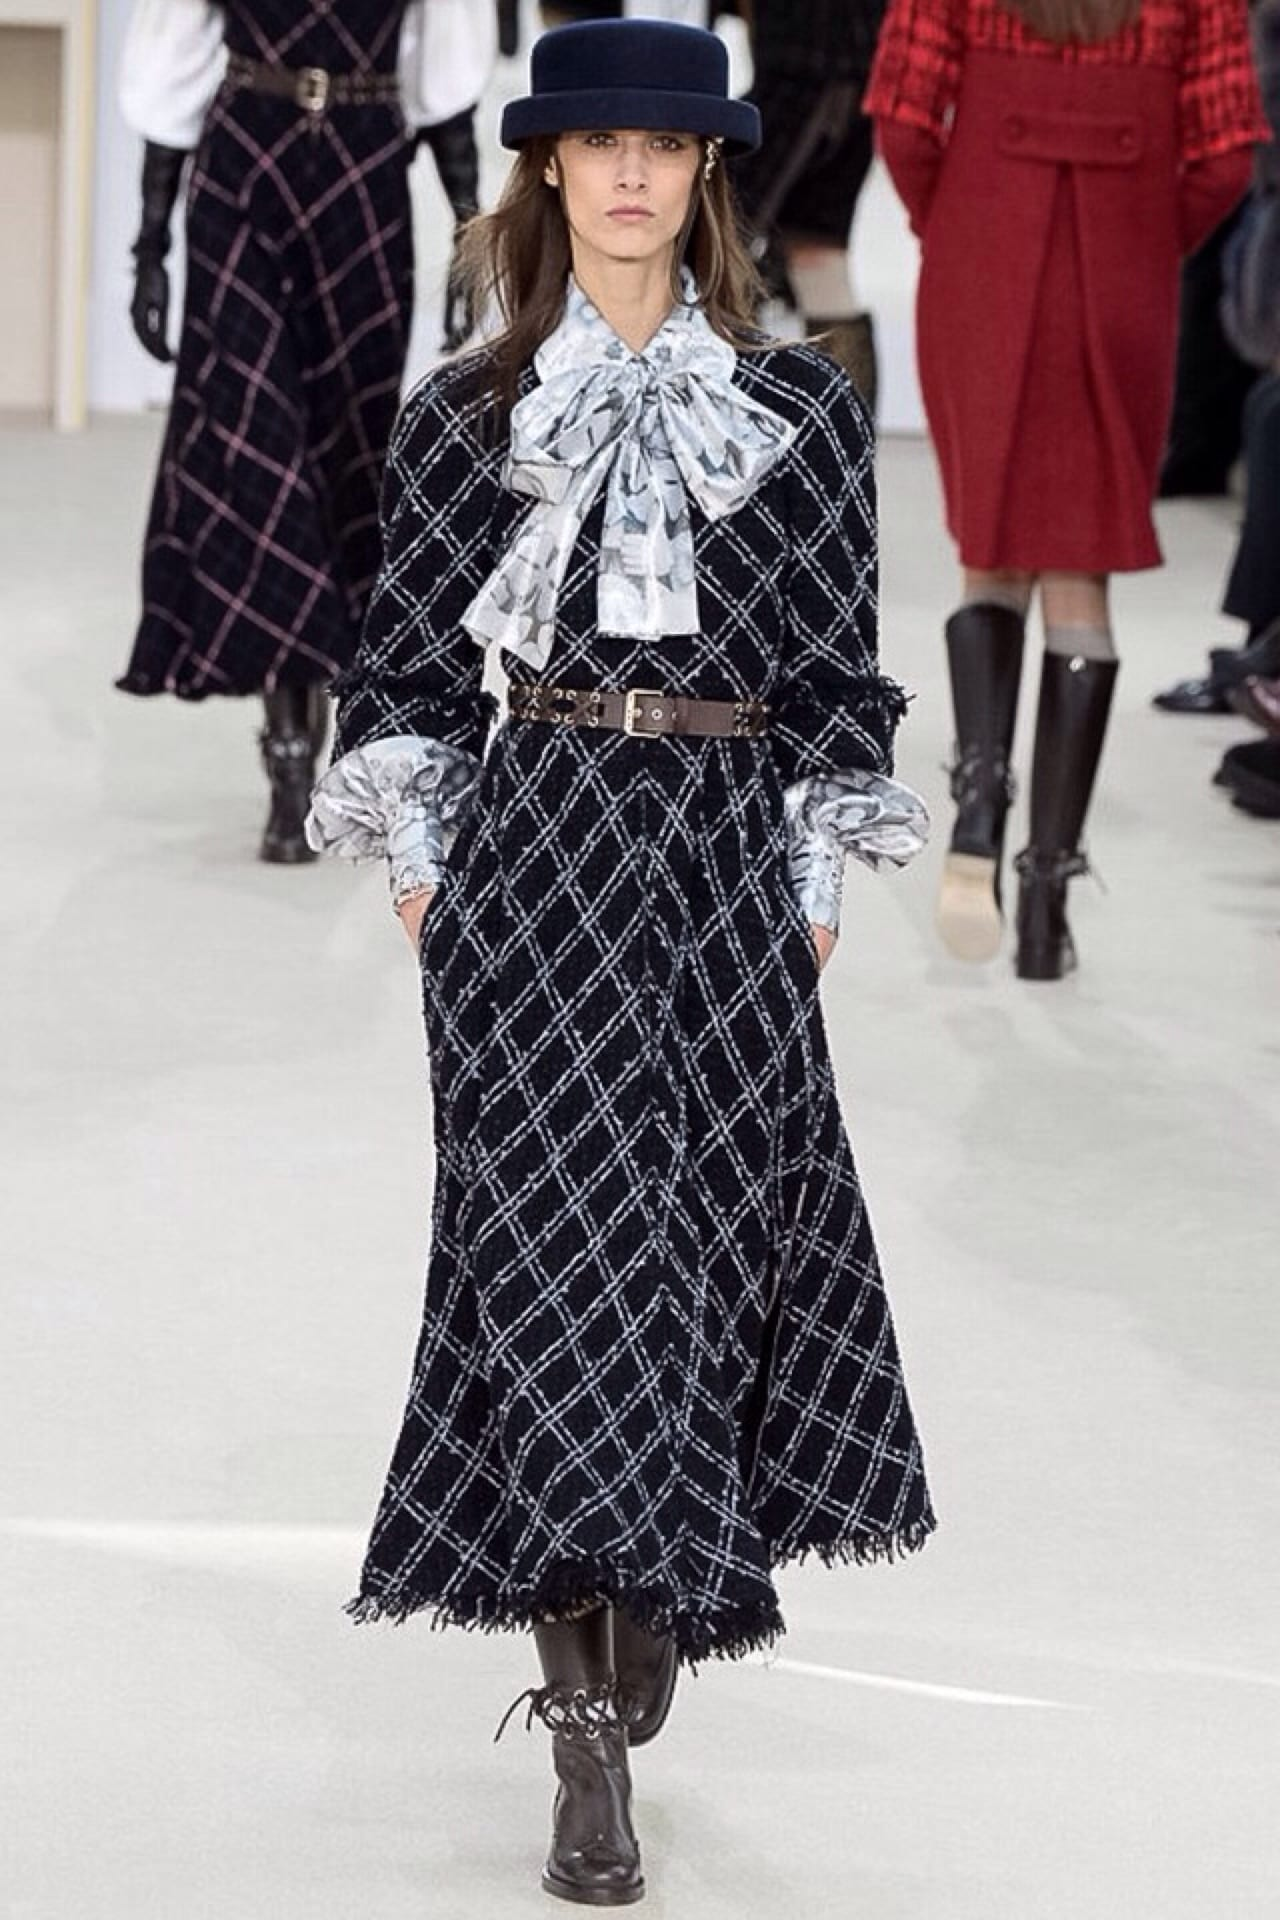 chanel fall winter 2016, Chanel, Fashion Show, Ready To Wear Collection Fall Winter 2016, in Paris, theladycracy.it, elisa bellino, fashion blog, fashion blogger italiane, fashion blog italia, tendenze moda 2016, tendenze autunno inverno 2016